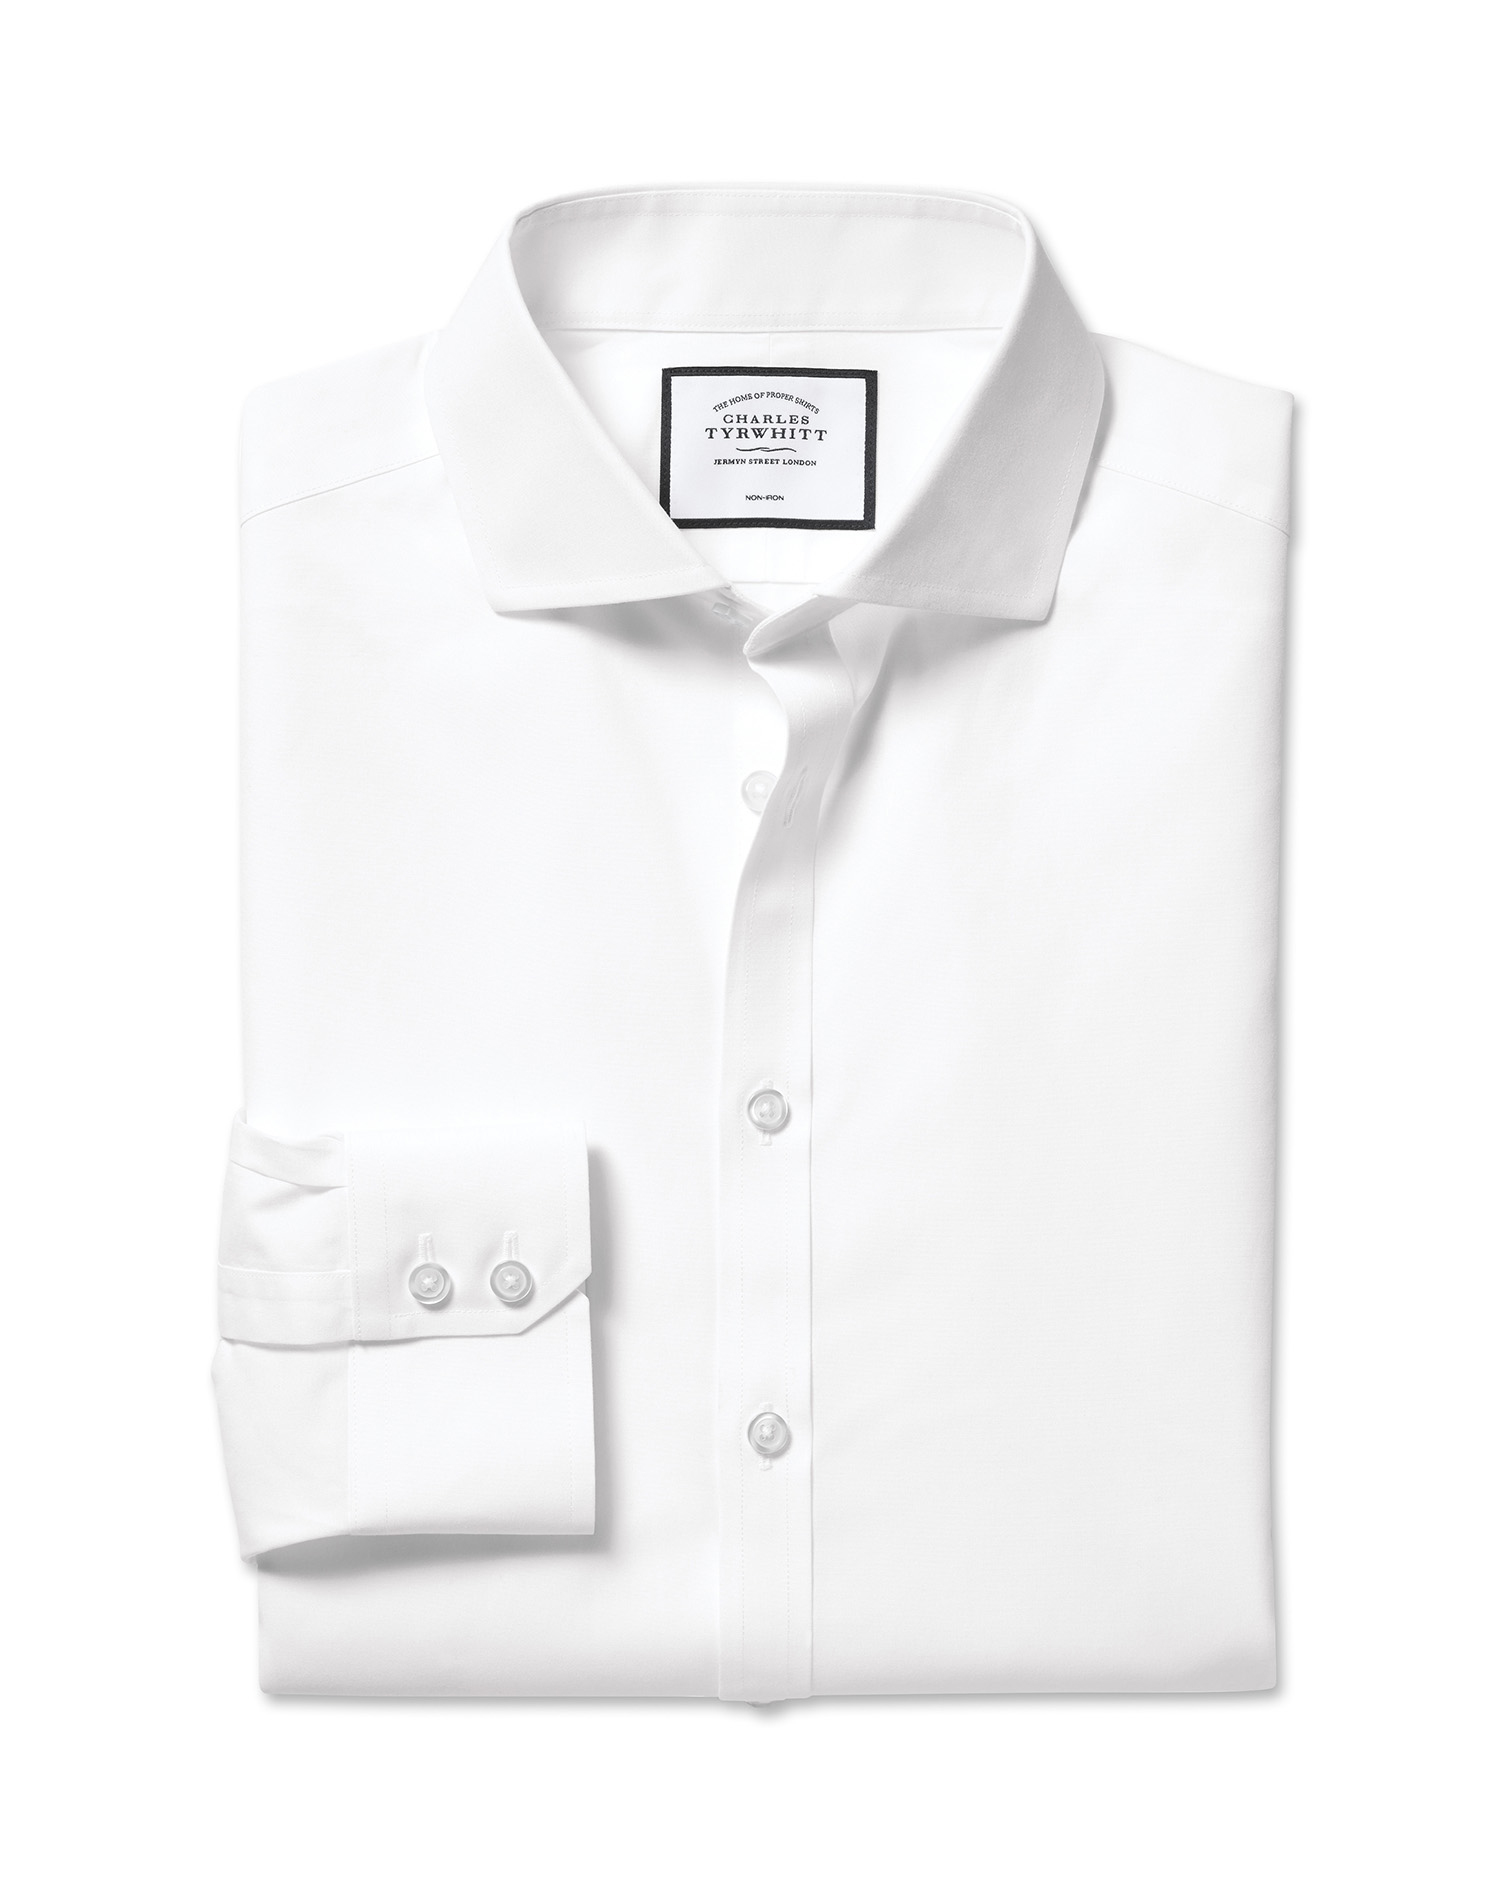 Extra Slim Fit Cutaway Non-Iron Natural Cool White Cotton Formal Shirt Single Cuff Size 17/35 by Cha